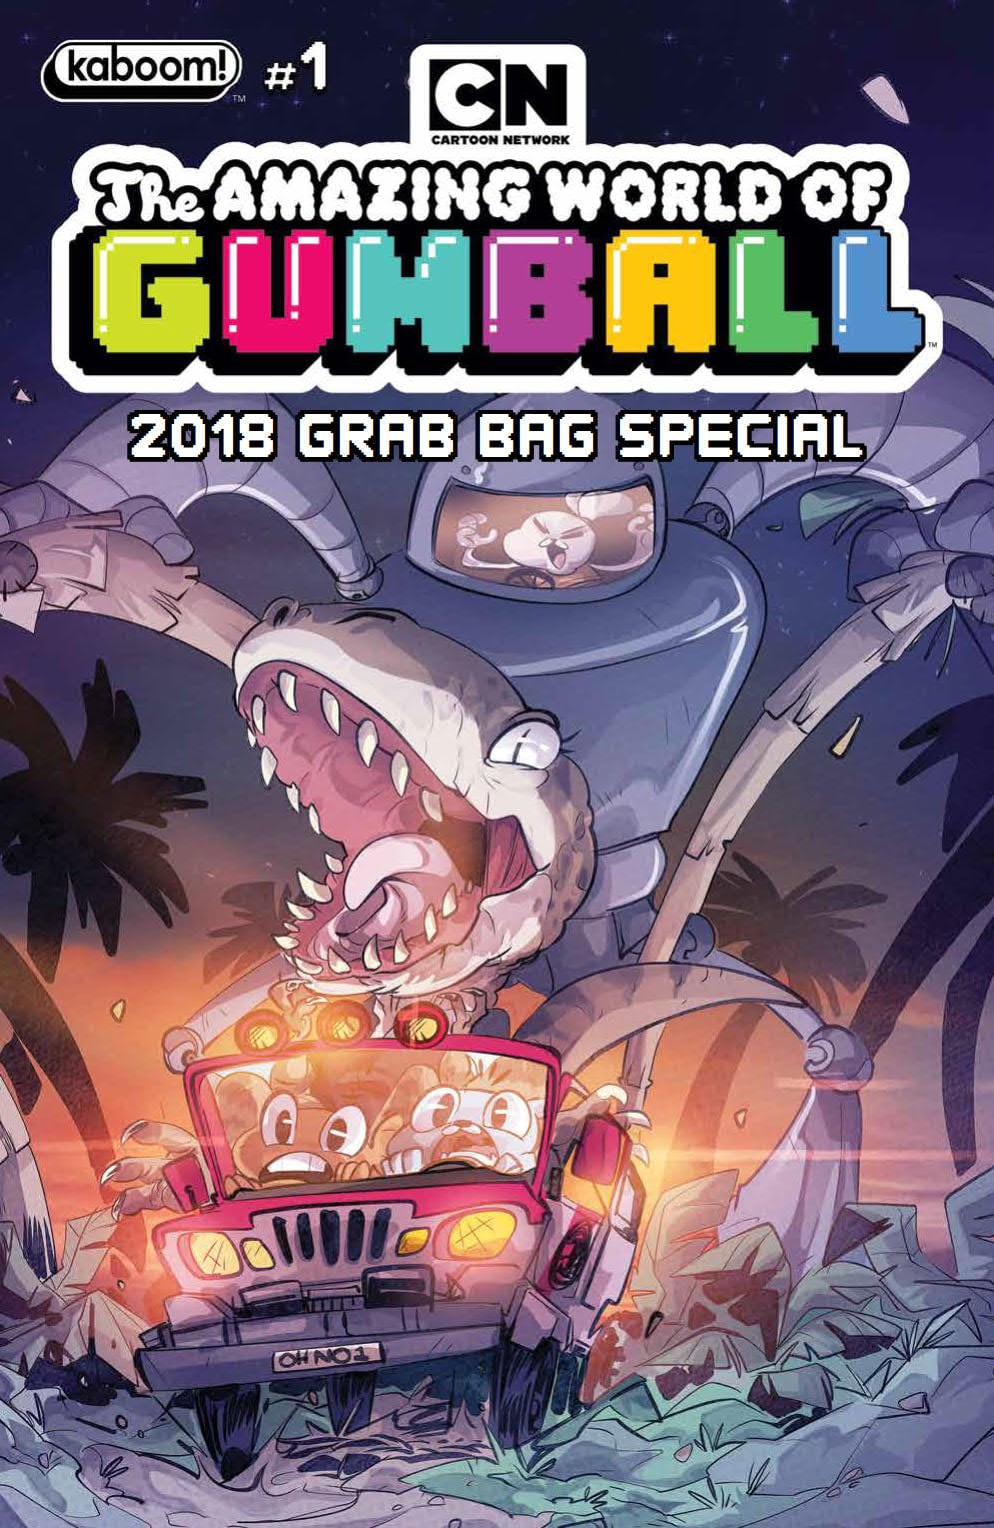 Preview Of The Amazing World Of Gumball 2018 Grab Bag